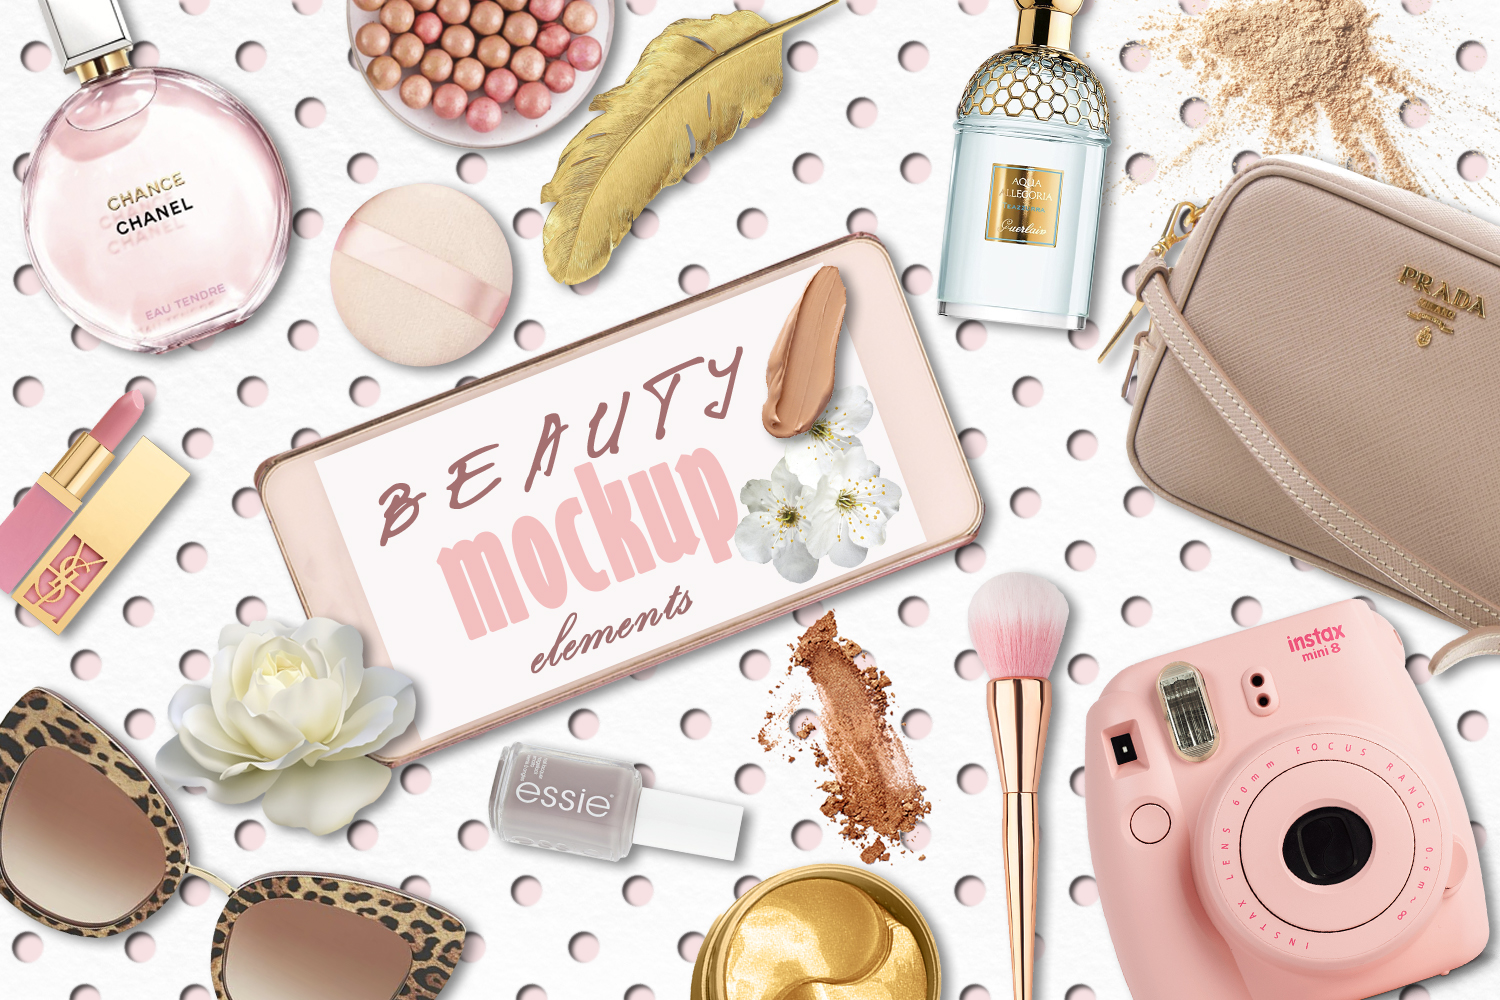 Beauty mockup elements and backgrounds example image 1